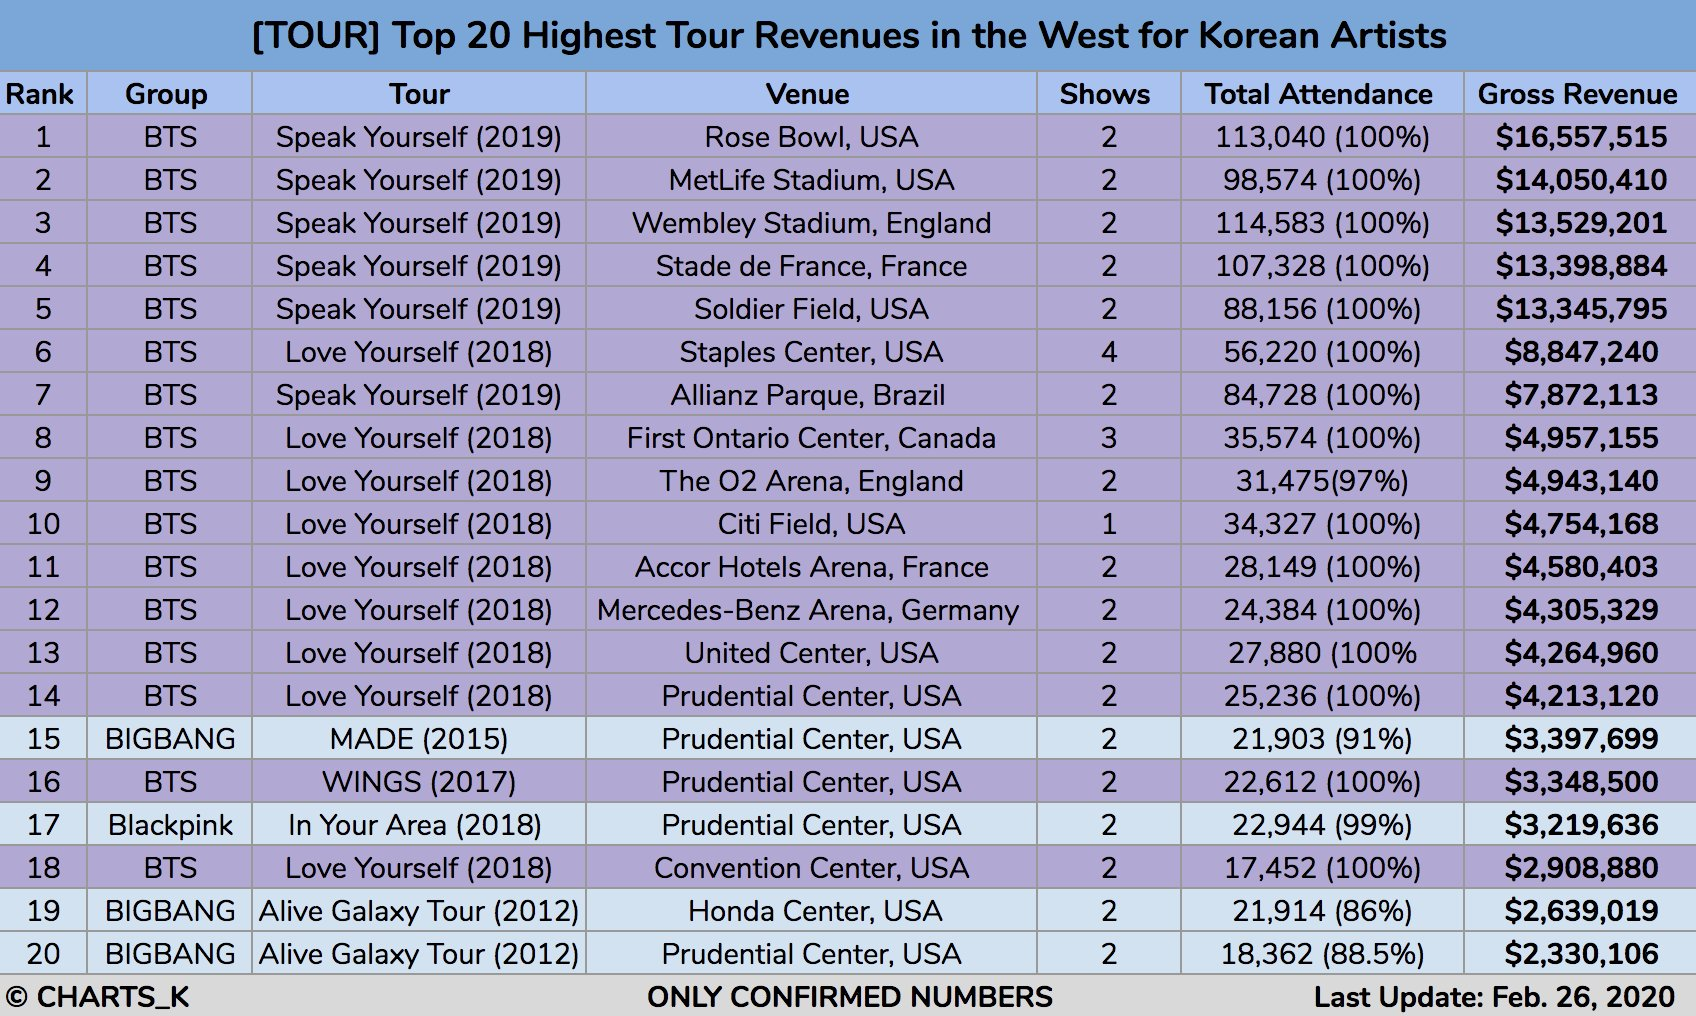 📊 Top 20 Highest Tour Revenues in the West for Korean Artists  1 BTS Rose Bowl — $16,557,515 2 BTS MetLife Stadium — $14,050,410 3 BTS Wembley Stadium — $13,529,201 4 BTS Stade de France — $13,398,884  After the MOTS tour BTS will likely occupy the entire first Top 40/50 spots. https://t.co/JROVjQegow